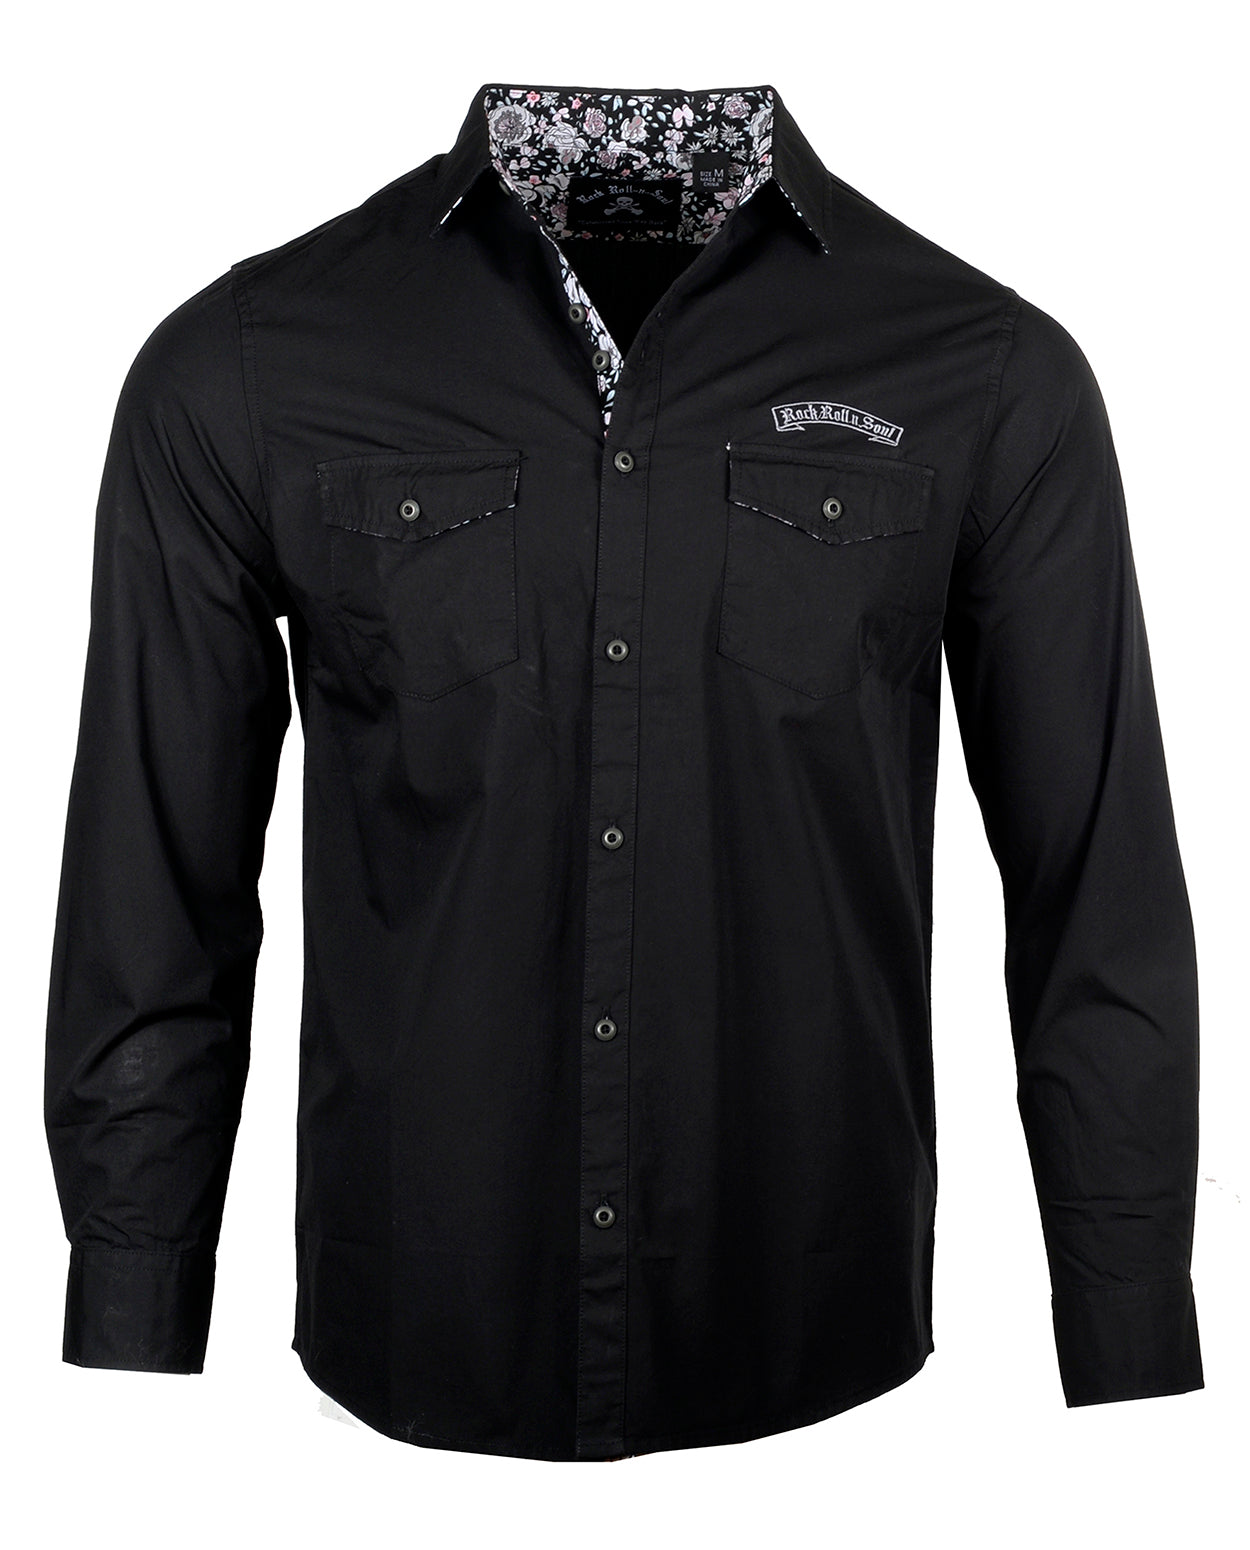 Men's Casual Fashion Button Up Shirt - More Than Words by Rock Roll n Soul